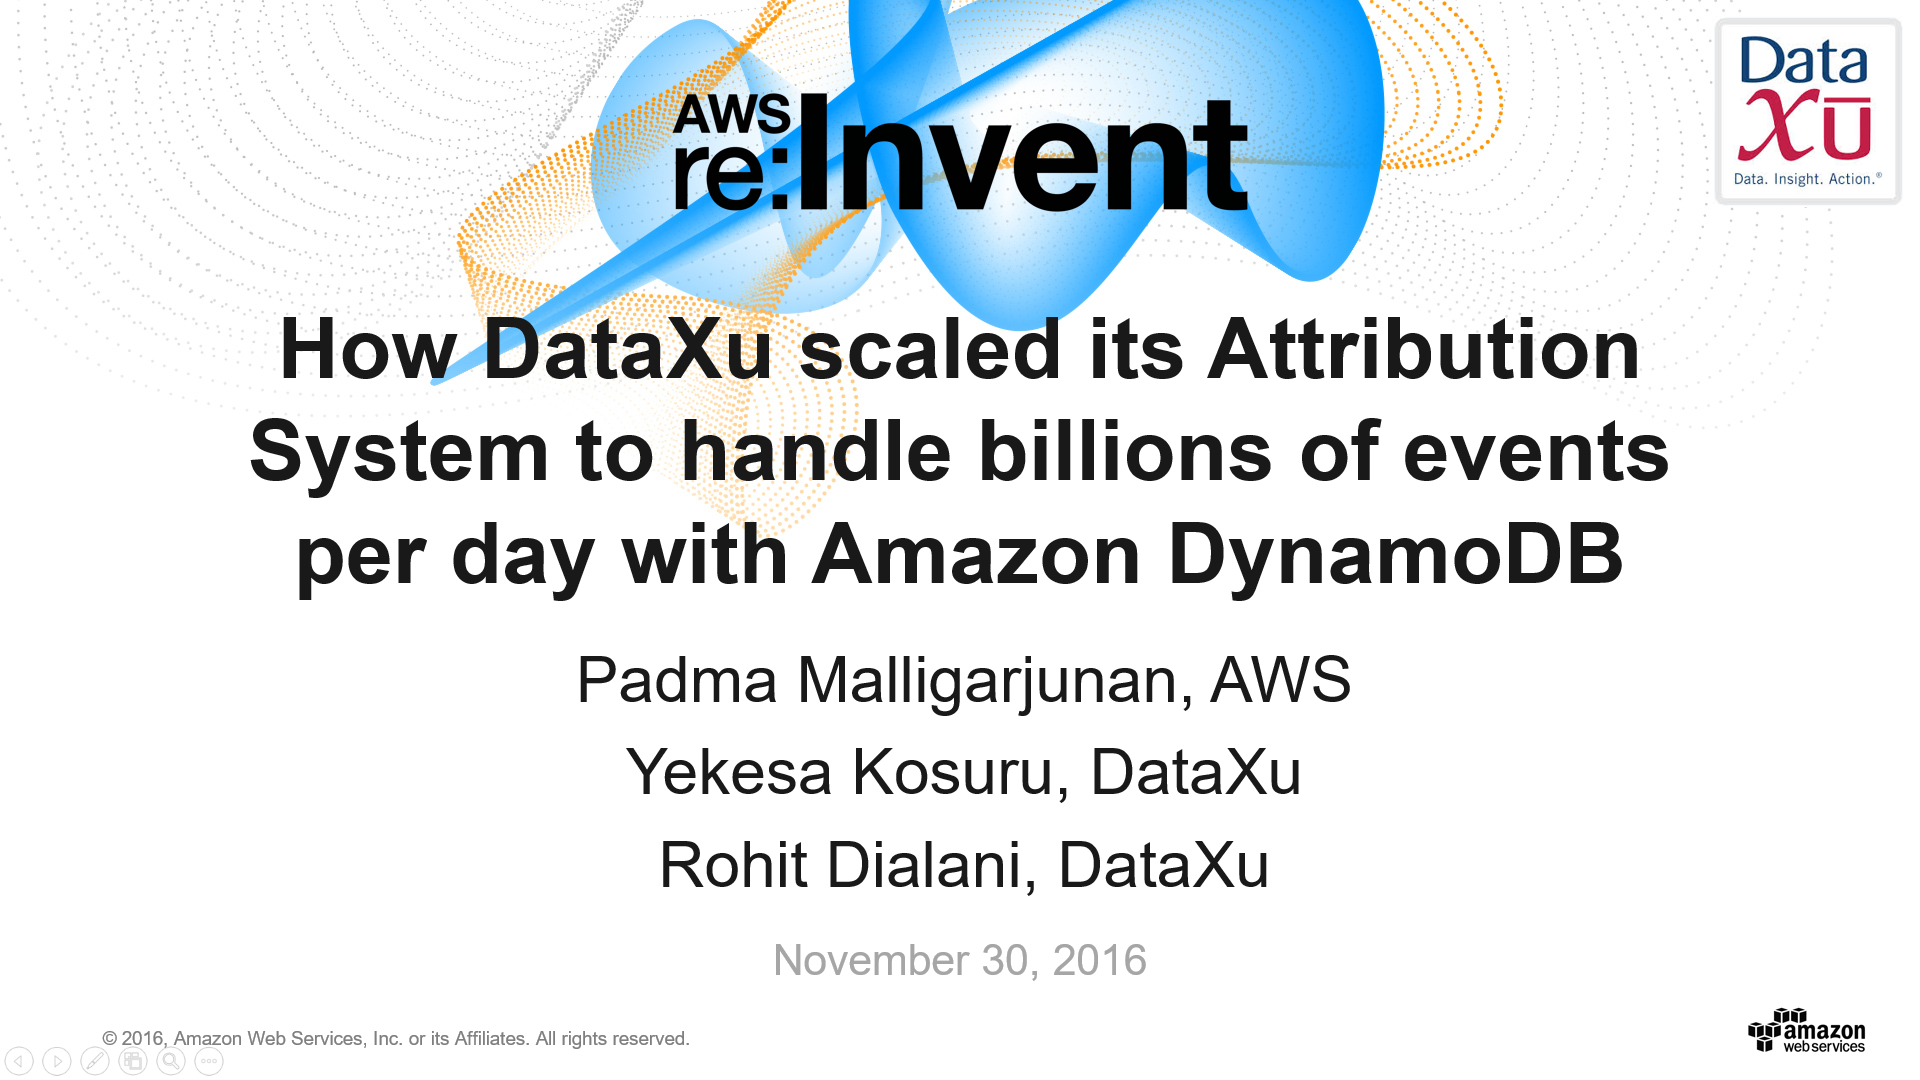 DAT312 How DataXu scaled its Attribution System to handle billions of events per day with Amazon DynamoDB